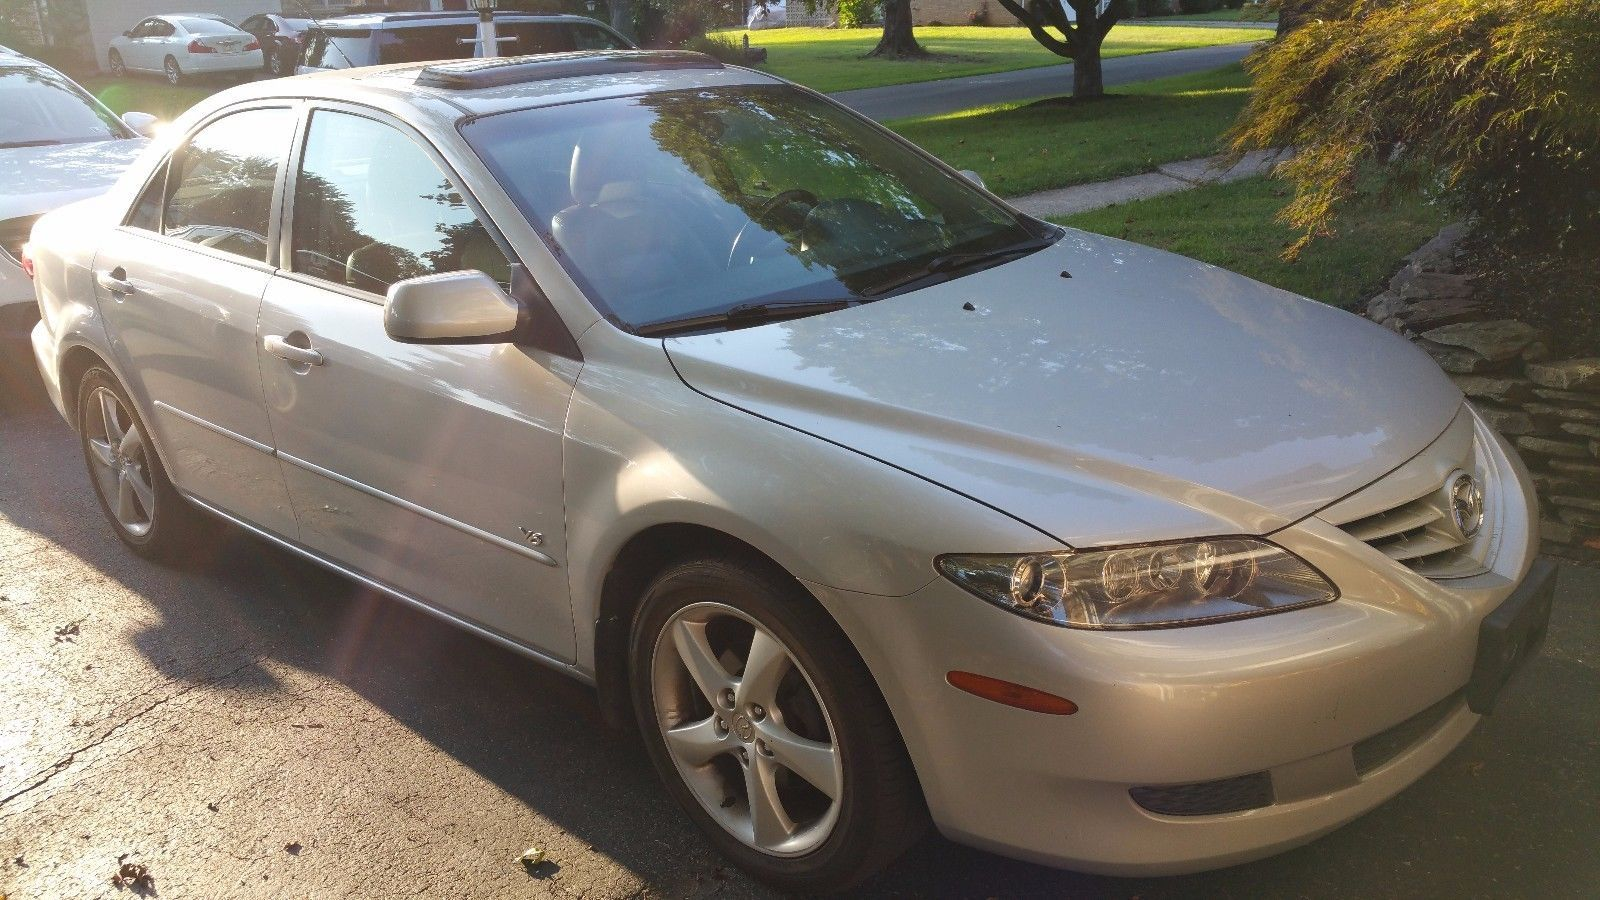 2005 Mazda Mazda6 touring | Mazda6, Mazda and Motor car